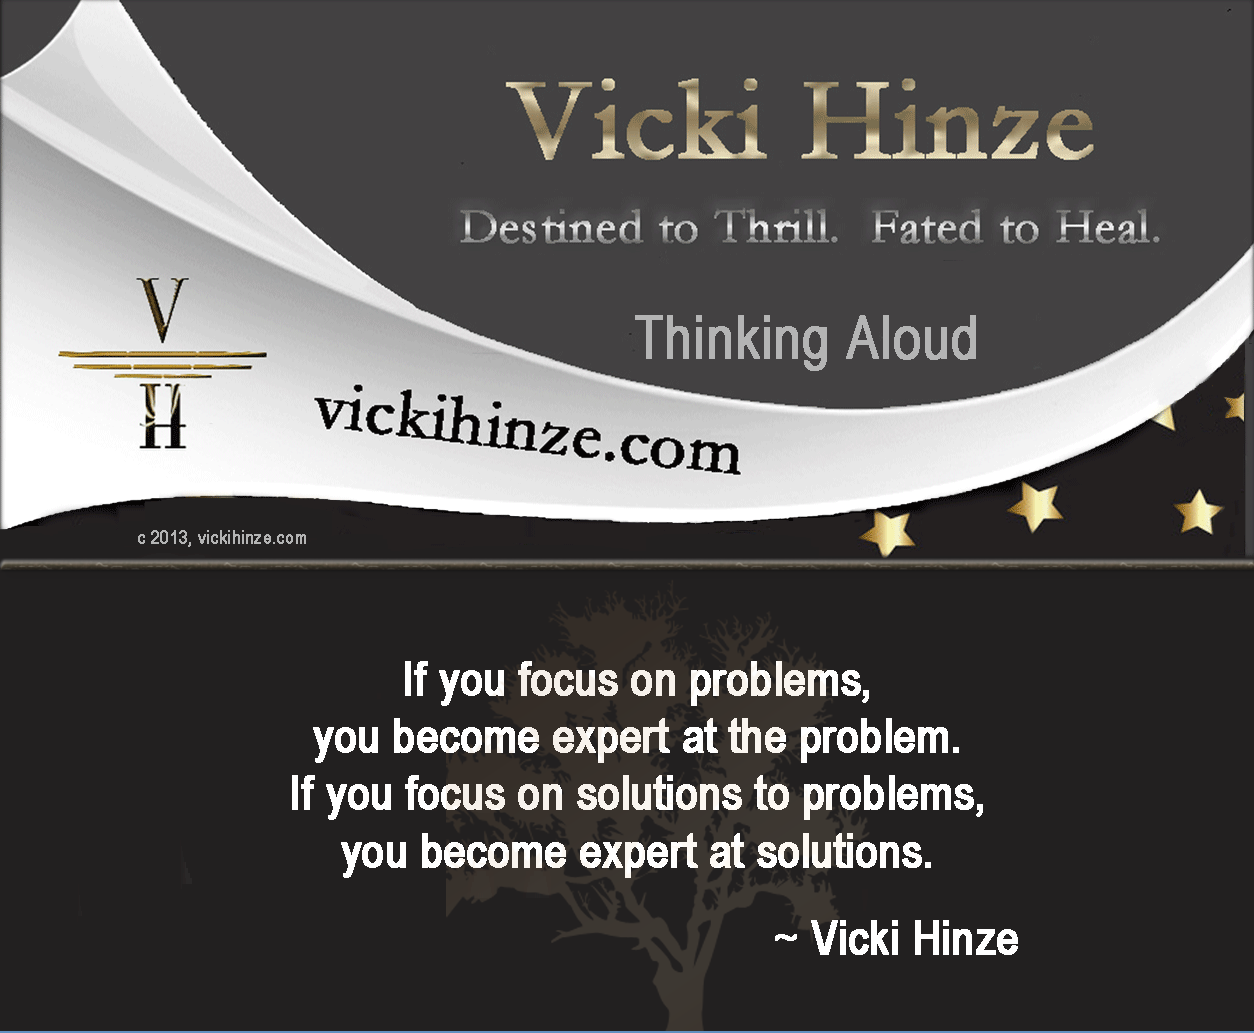 vicki hinze, problems, solutions, thinking aloud